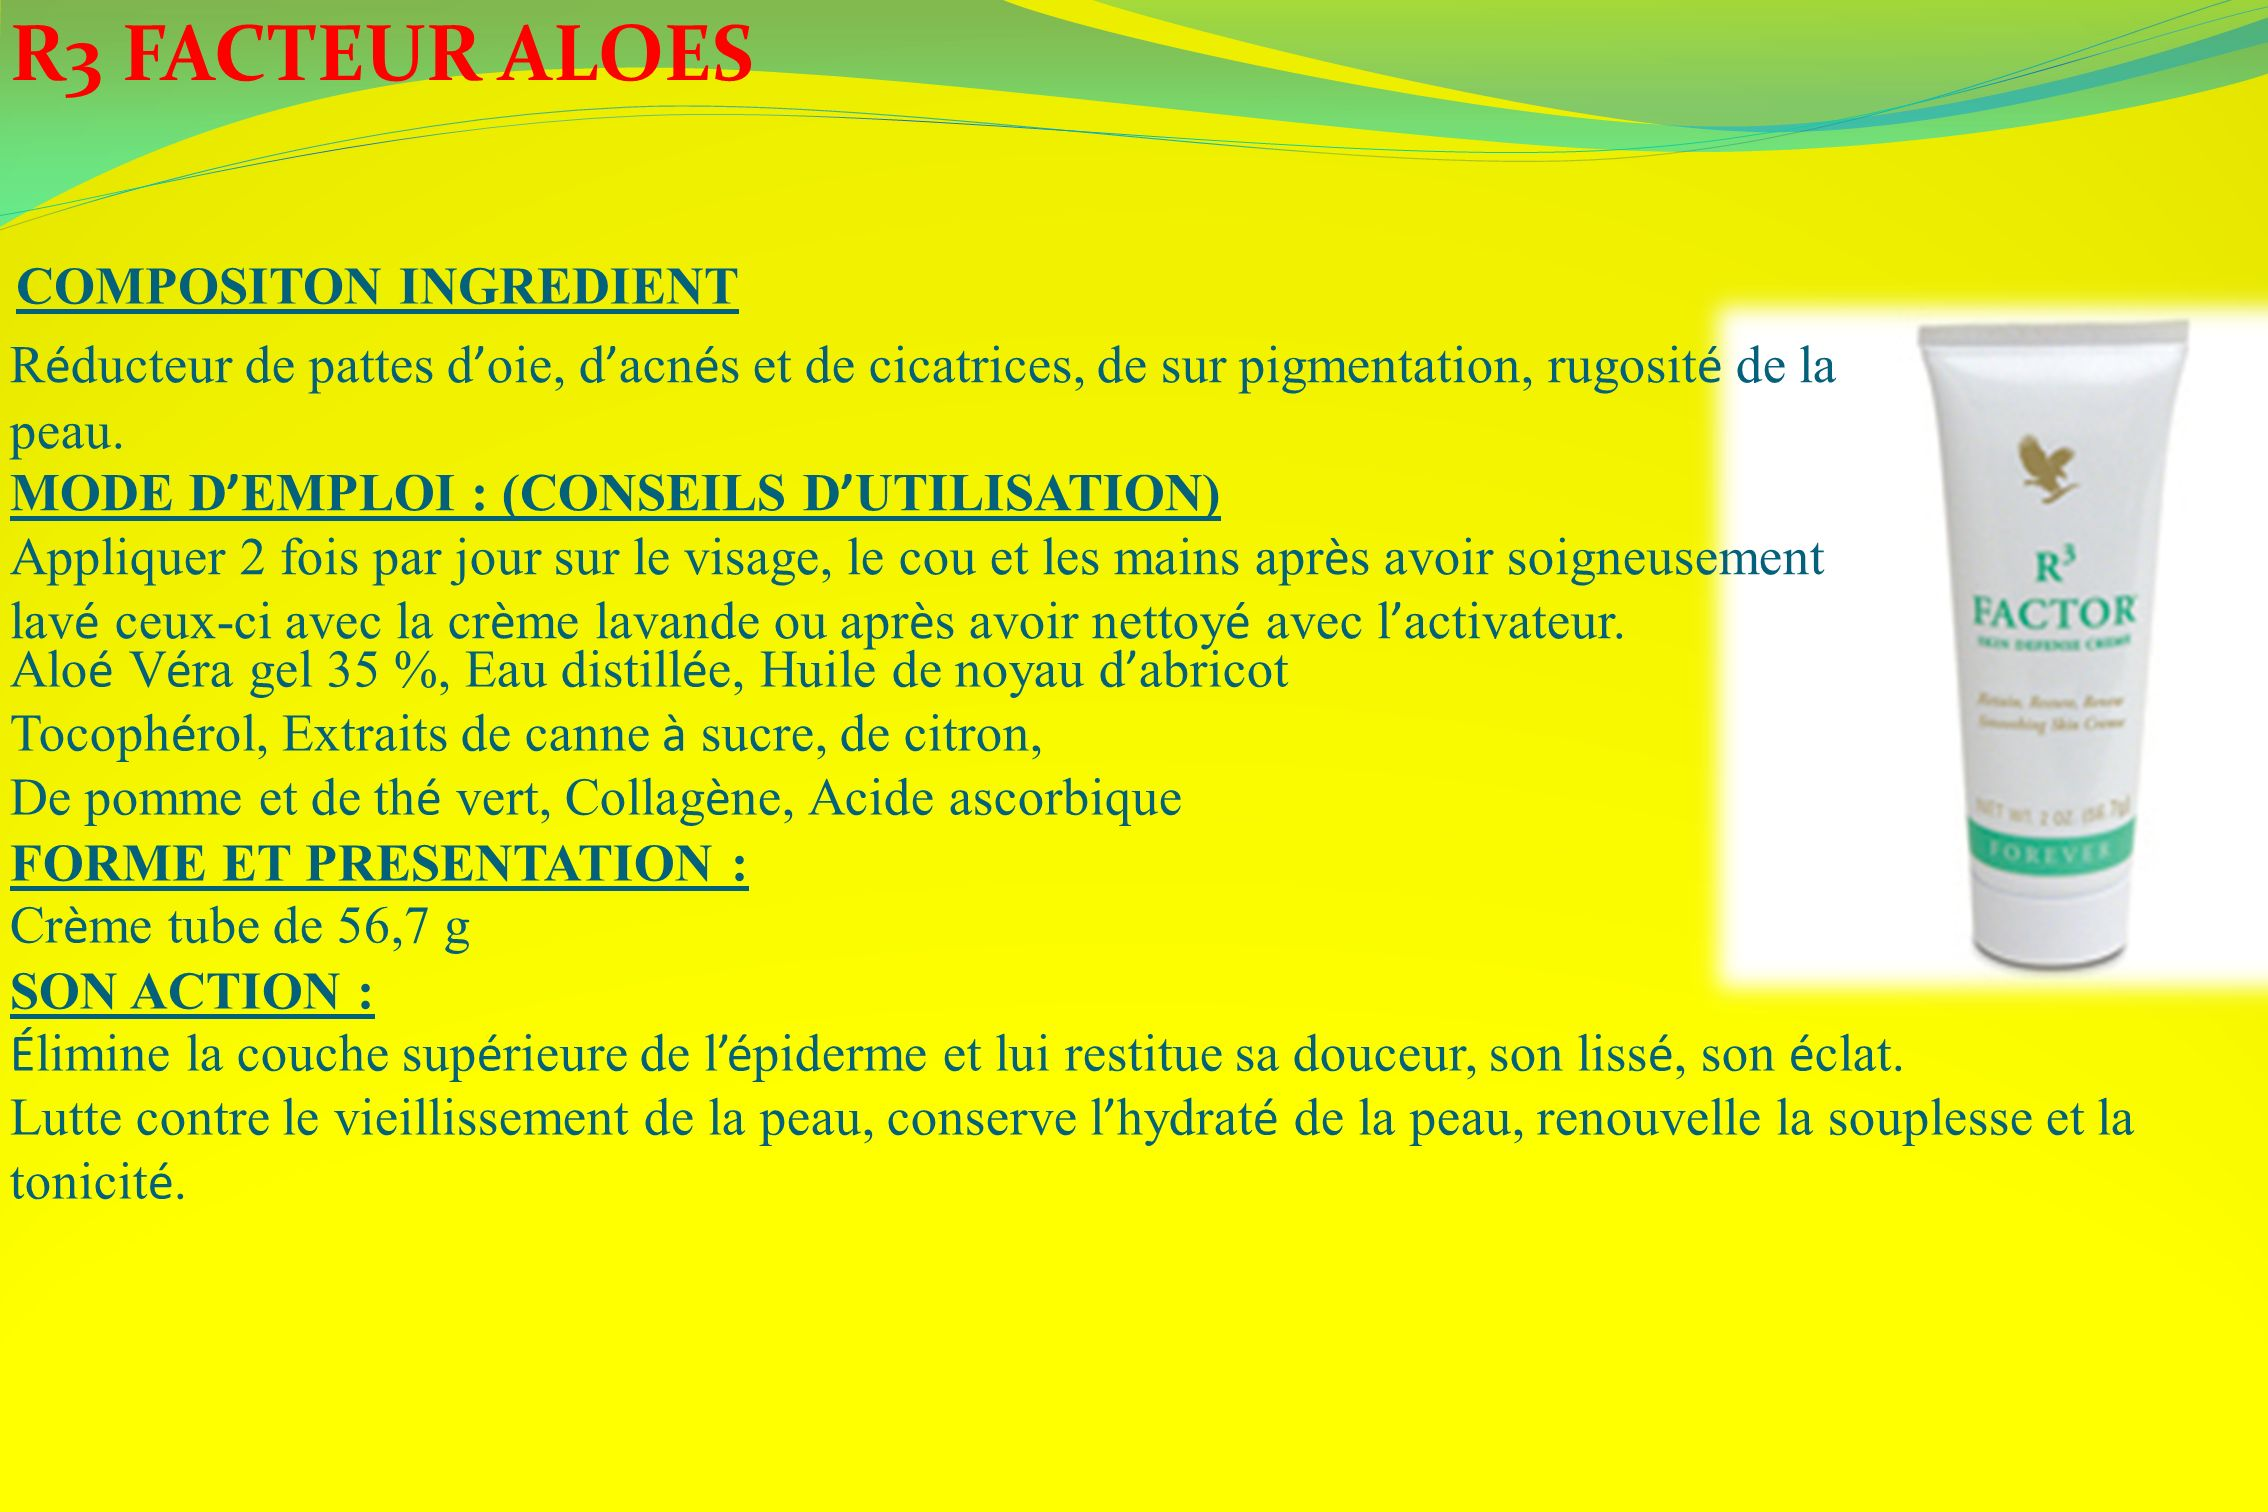 R3 FACTEUR ALOES COMPOSITON INGREDIENT